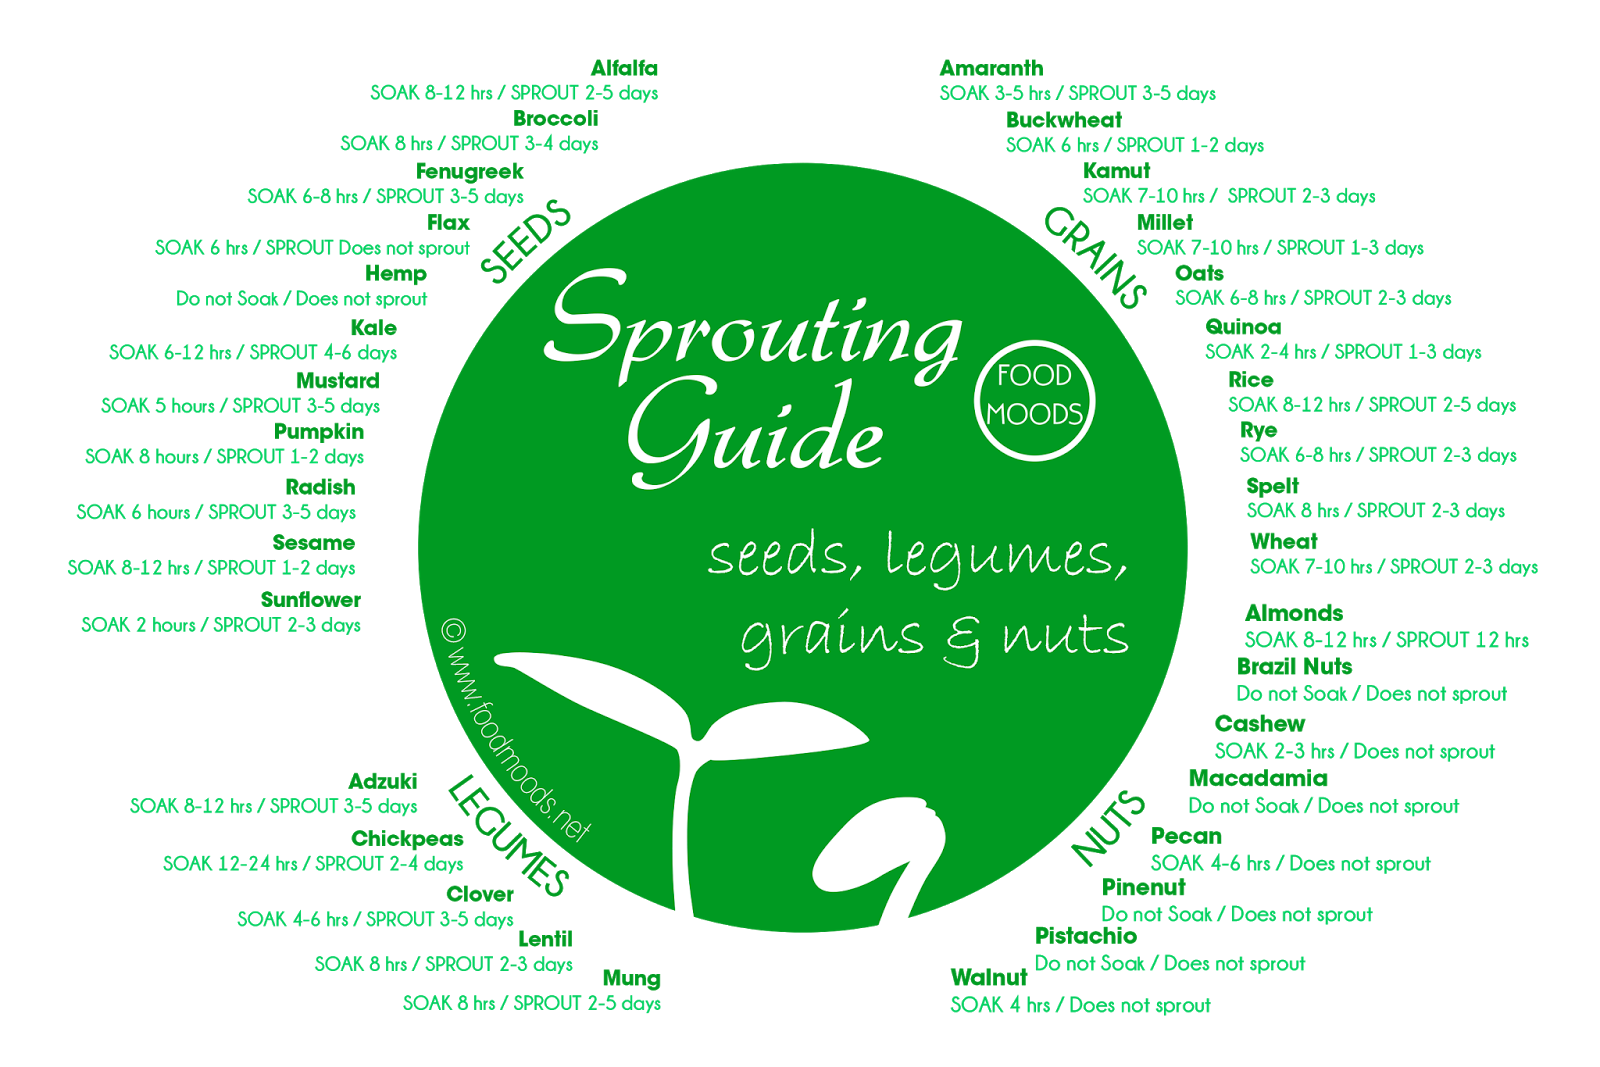 Sprouting Guide to seeds, legumes, grains and nuts